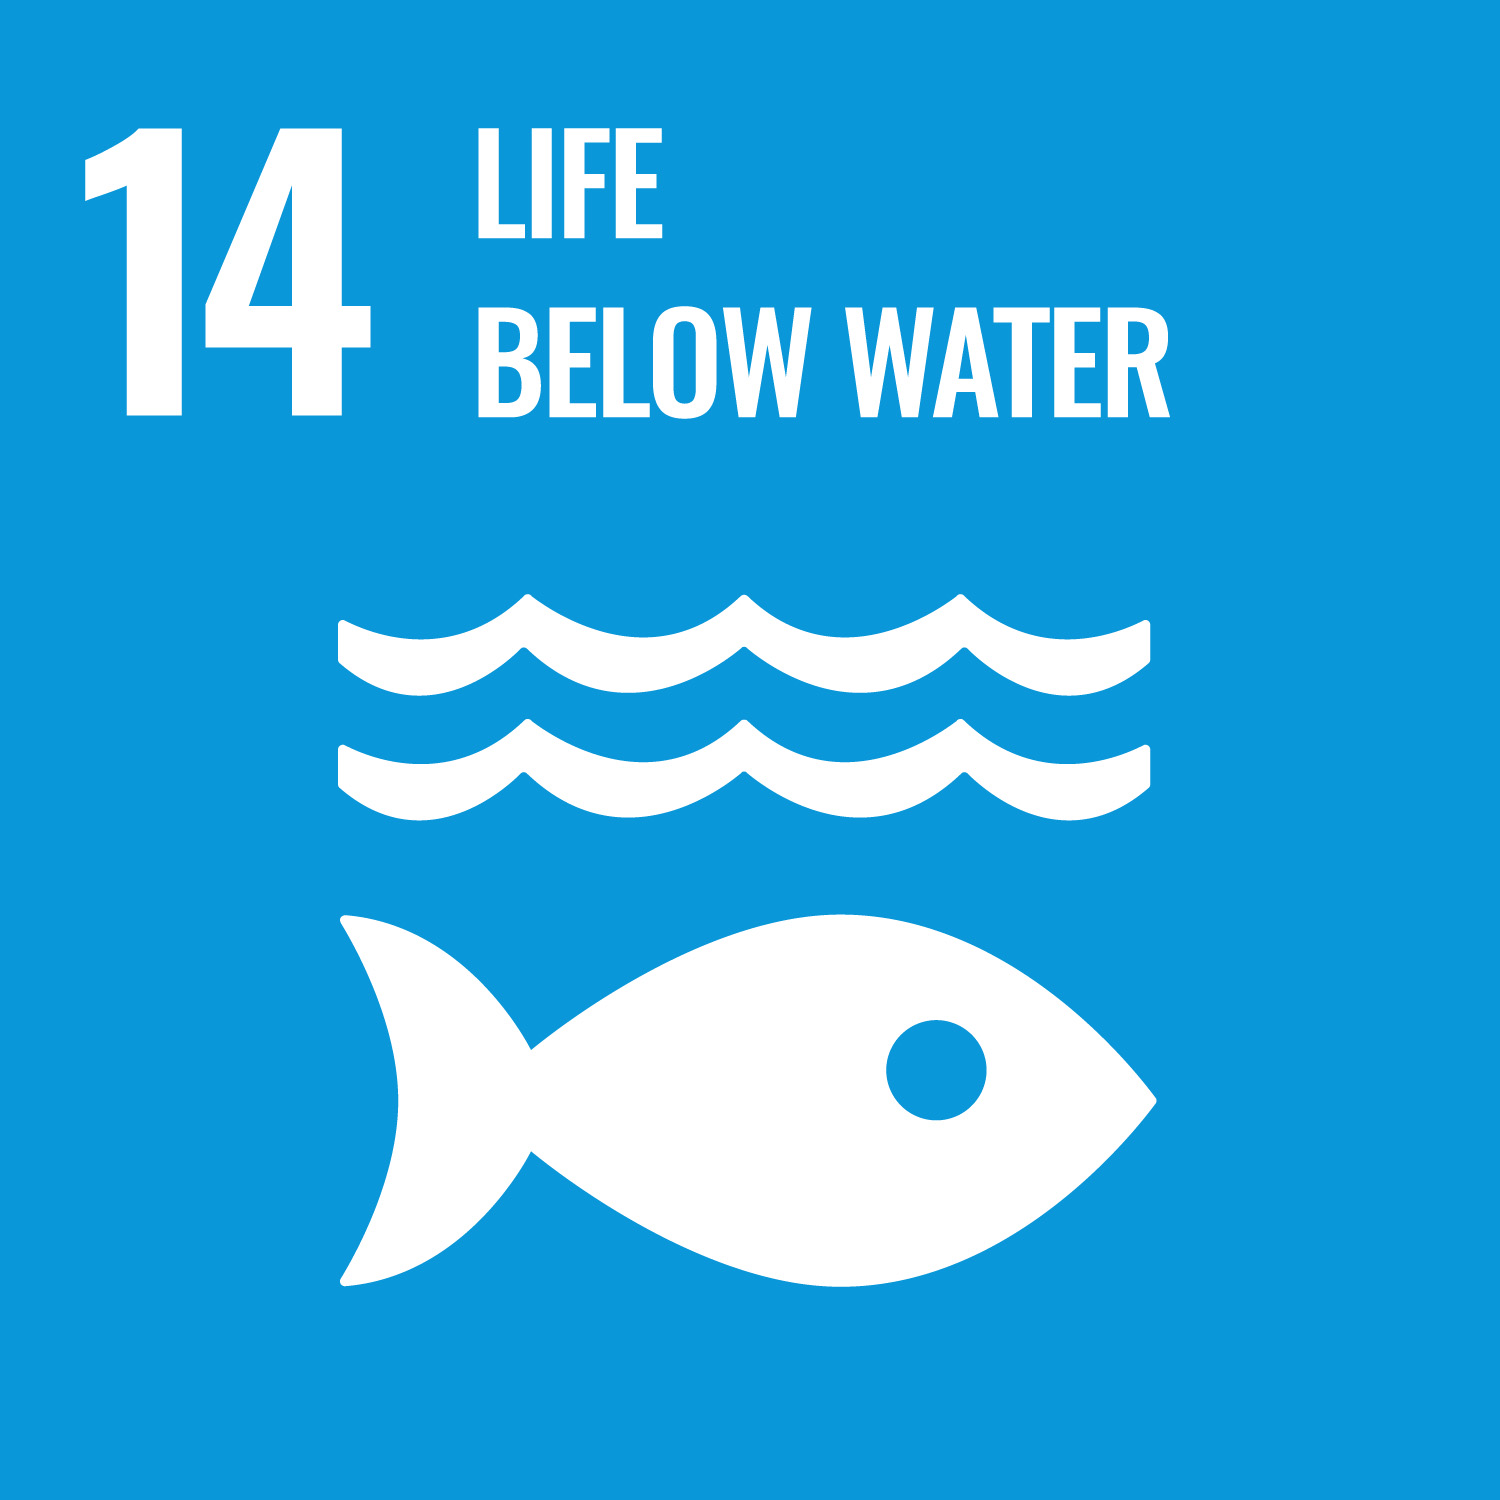 UN logo for life below water